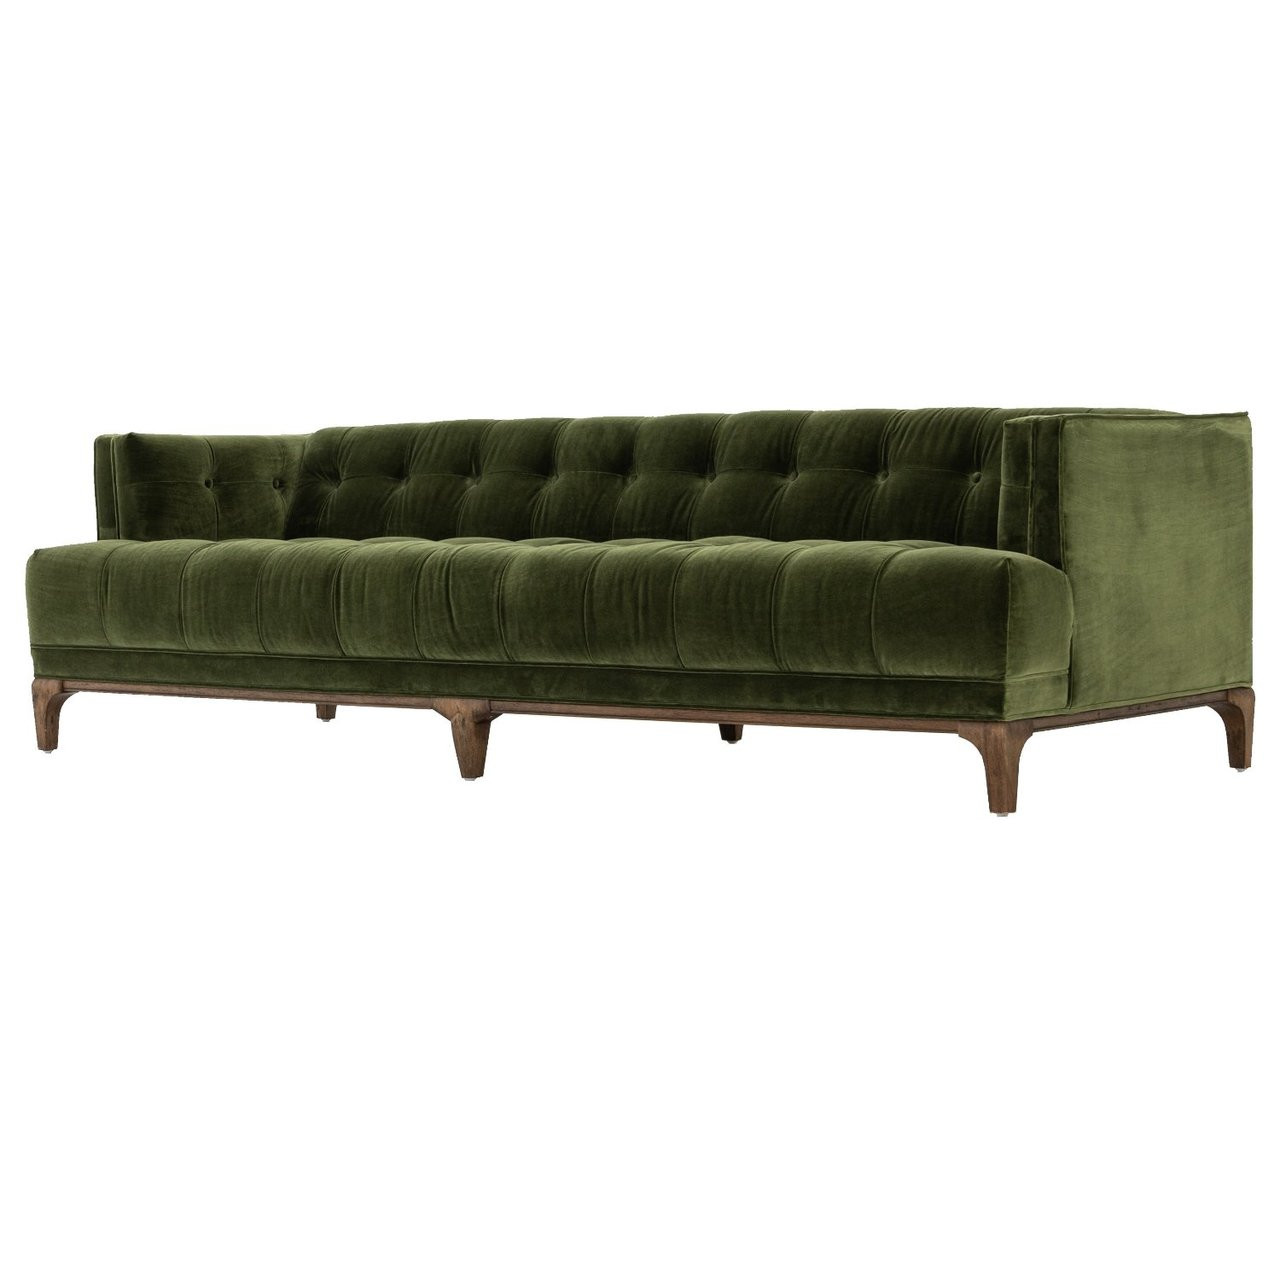 Excellent Dylan Mid Century Modern Olive Green Velvet Tufted Sofa Lamtechconsult Wood Chair Design Ideas Lamtechconsultcom